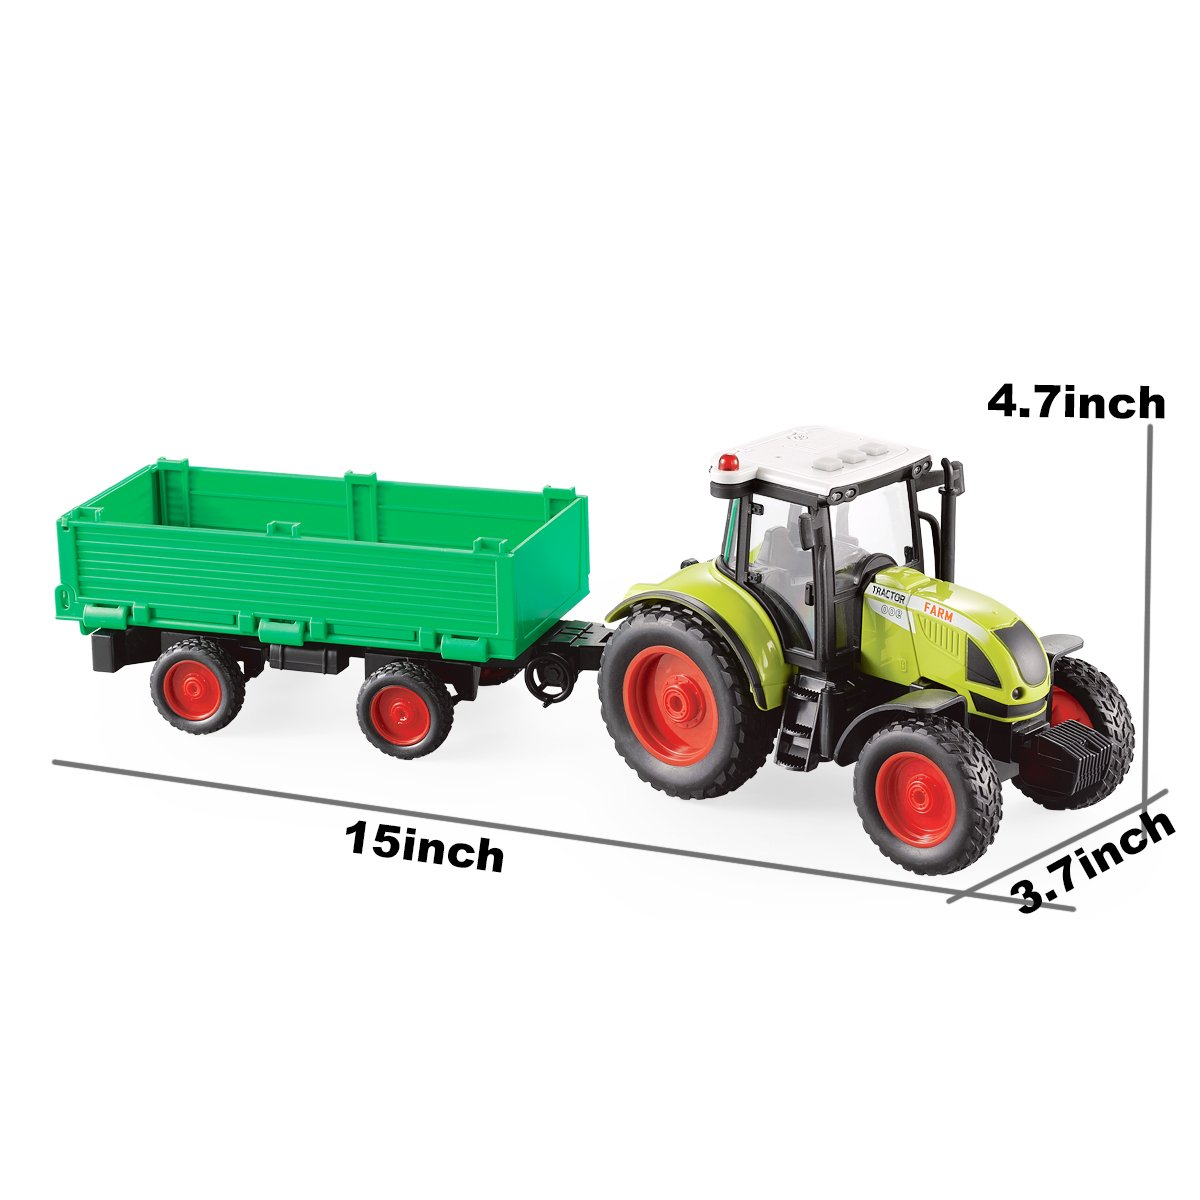 Fistone 1:16 Truck Inertia Farm Tractor Car with Bucket Trailer Modern Farm Machinery Car Toy Combination Simulation Farmer Tractor with Light and Music